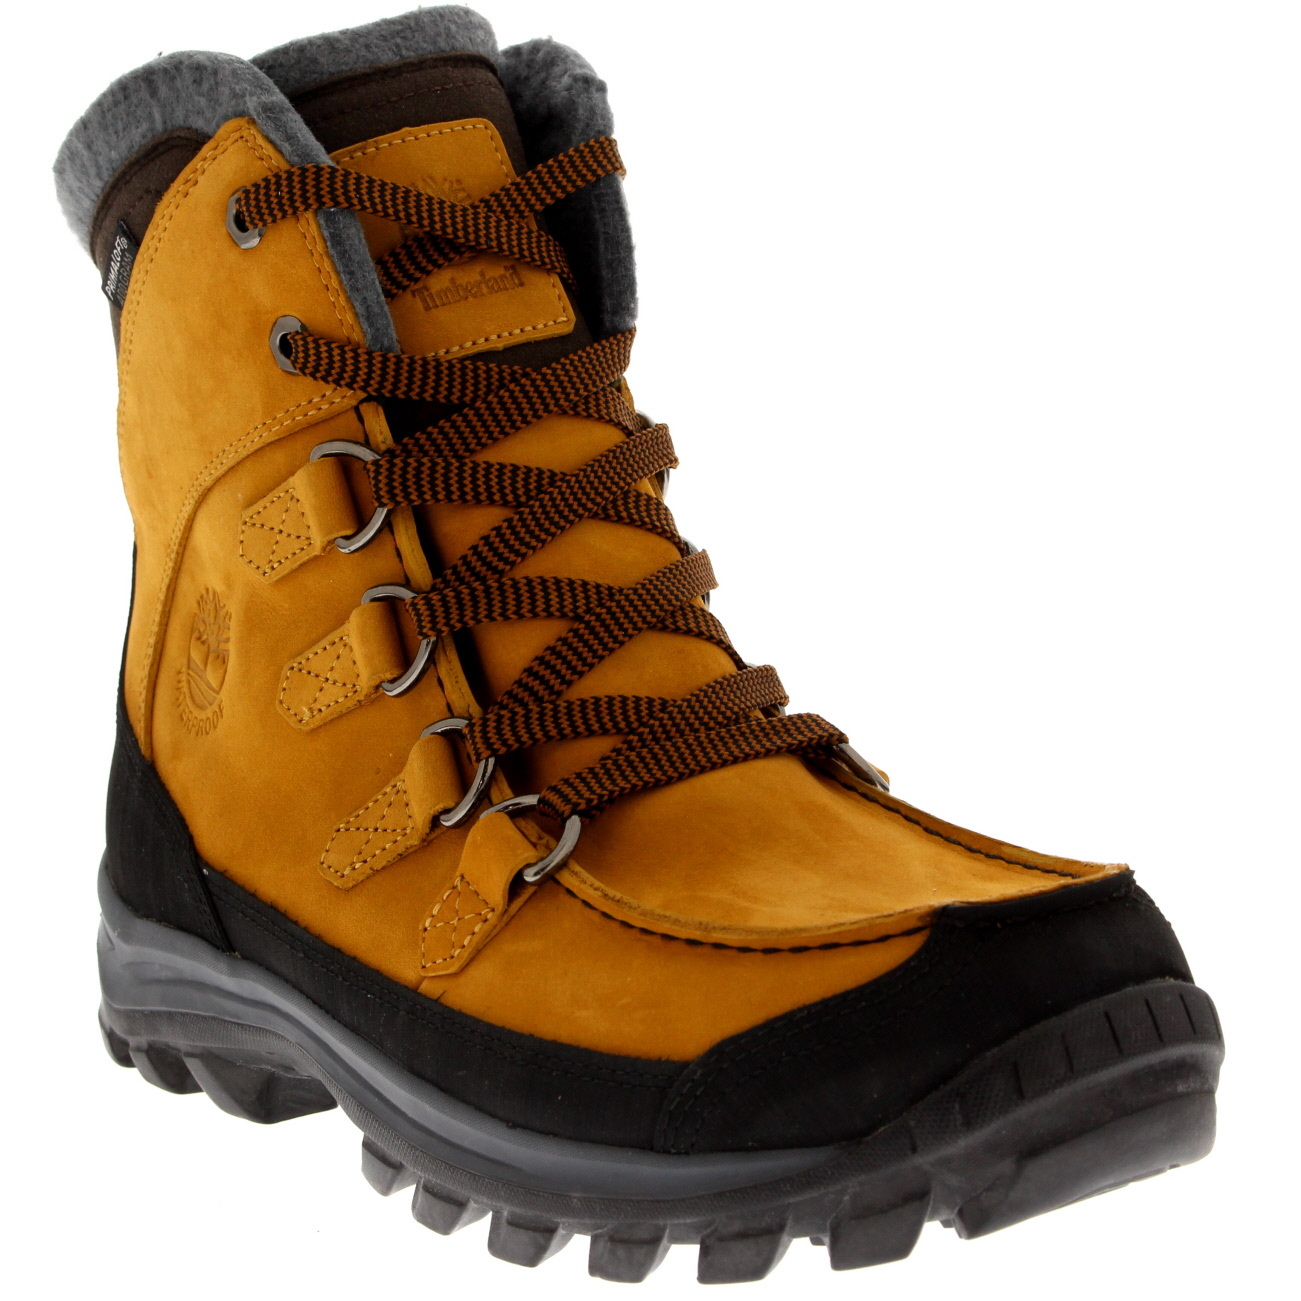 Mens Timberland Chillberg Earthkeeper Premium Snow Winter